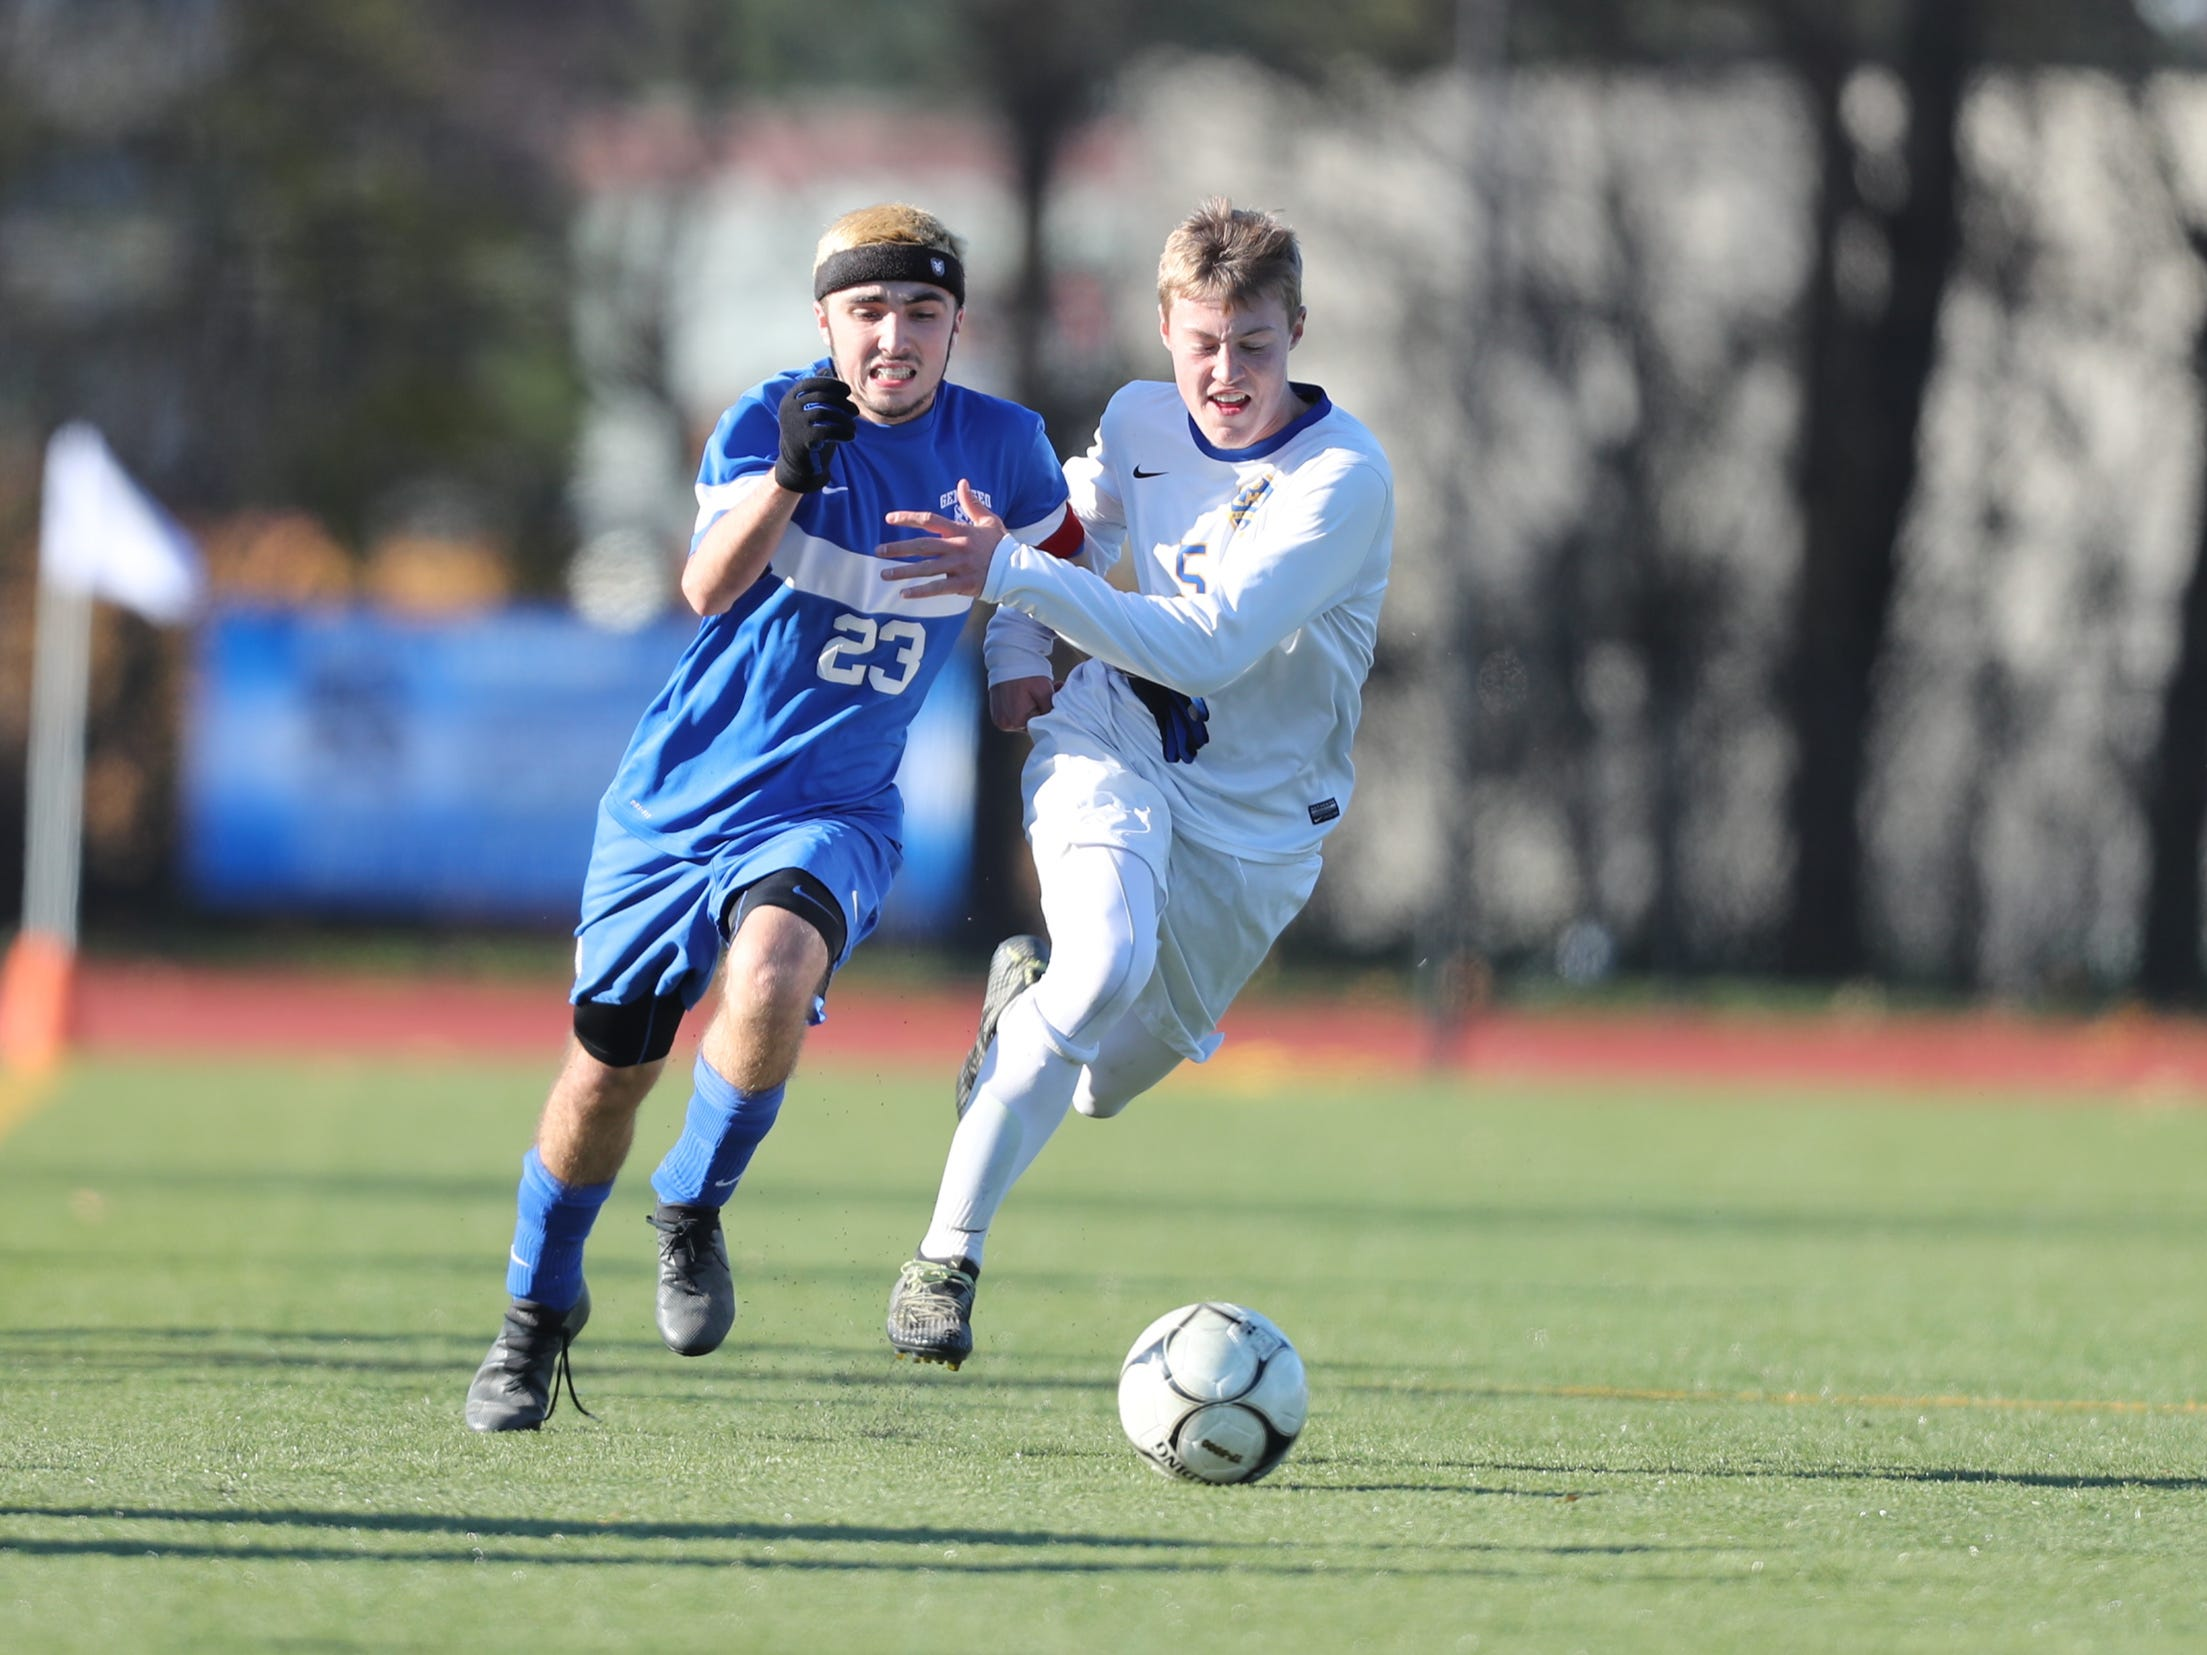 Lansing's Ethan Zemanick (5) and Geneseo's Camden Malone (23) battle for possession during the Class C boys state soccer final at Middletown High School in Middletown on Sunday, November 11, 2018.  Lansing won 3-0.